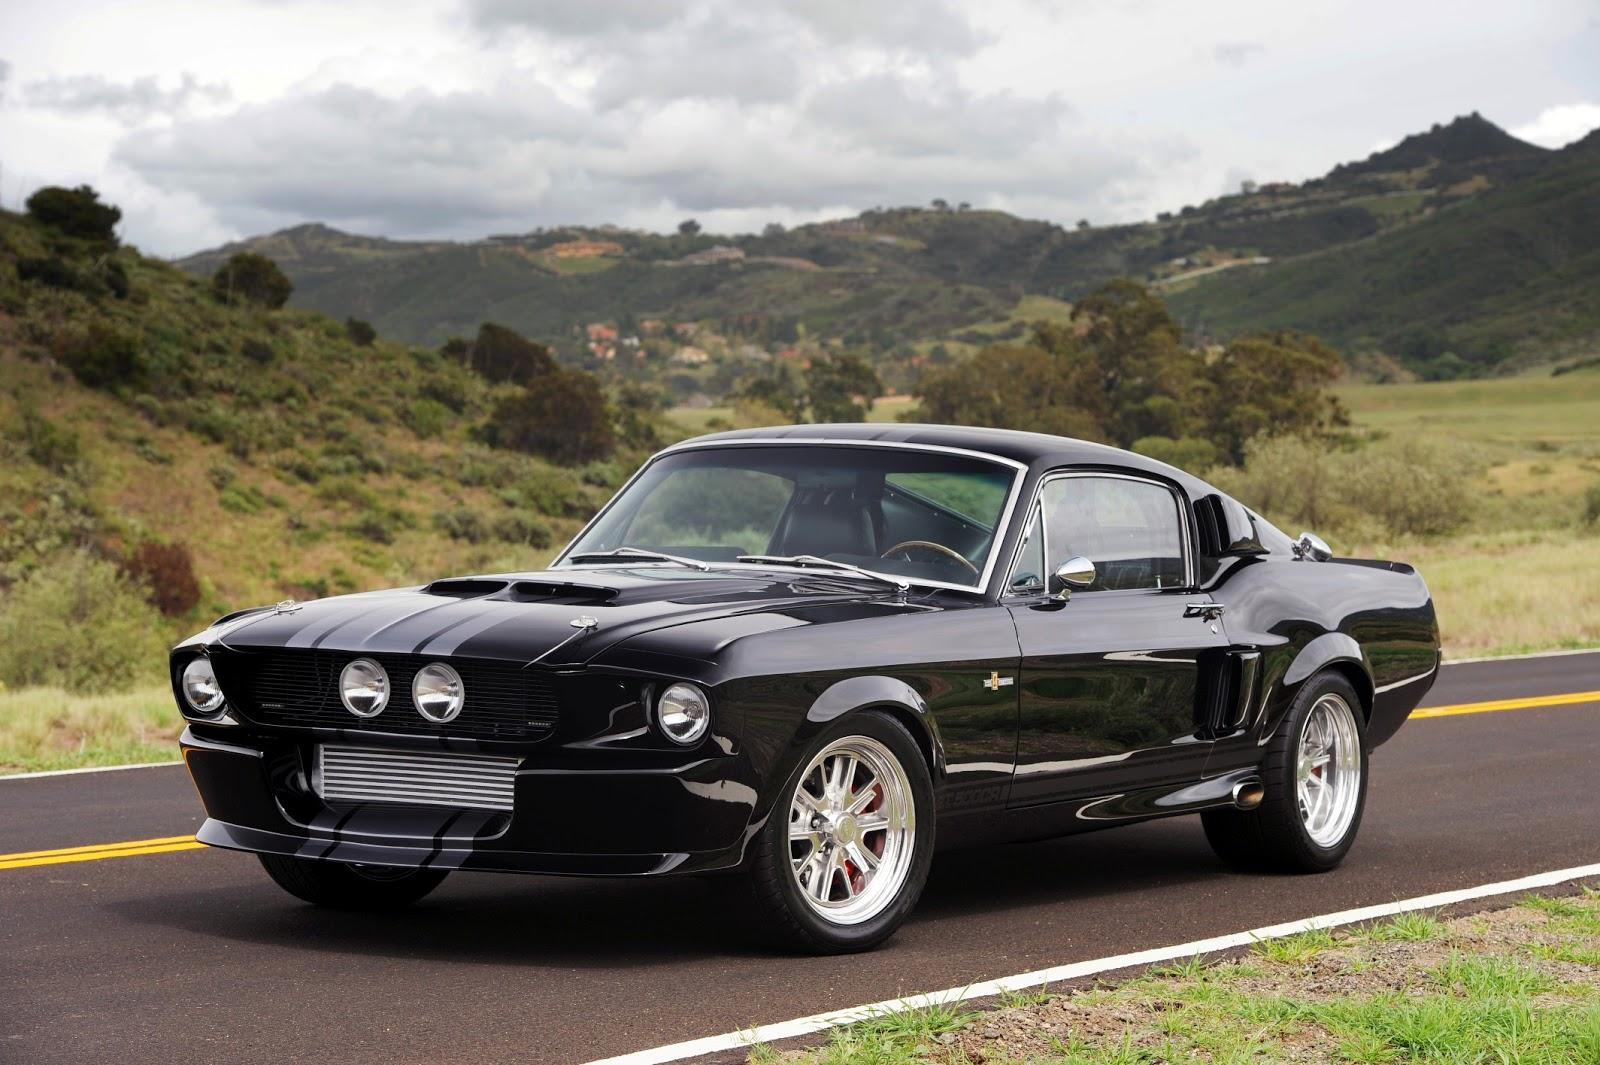 ford mustang shelby gt 500 1967 welcome to expert drivers. Black Bedroom Furniture Sets. Home Design Ideas